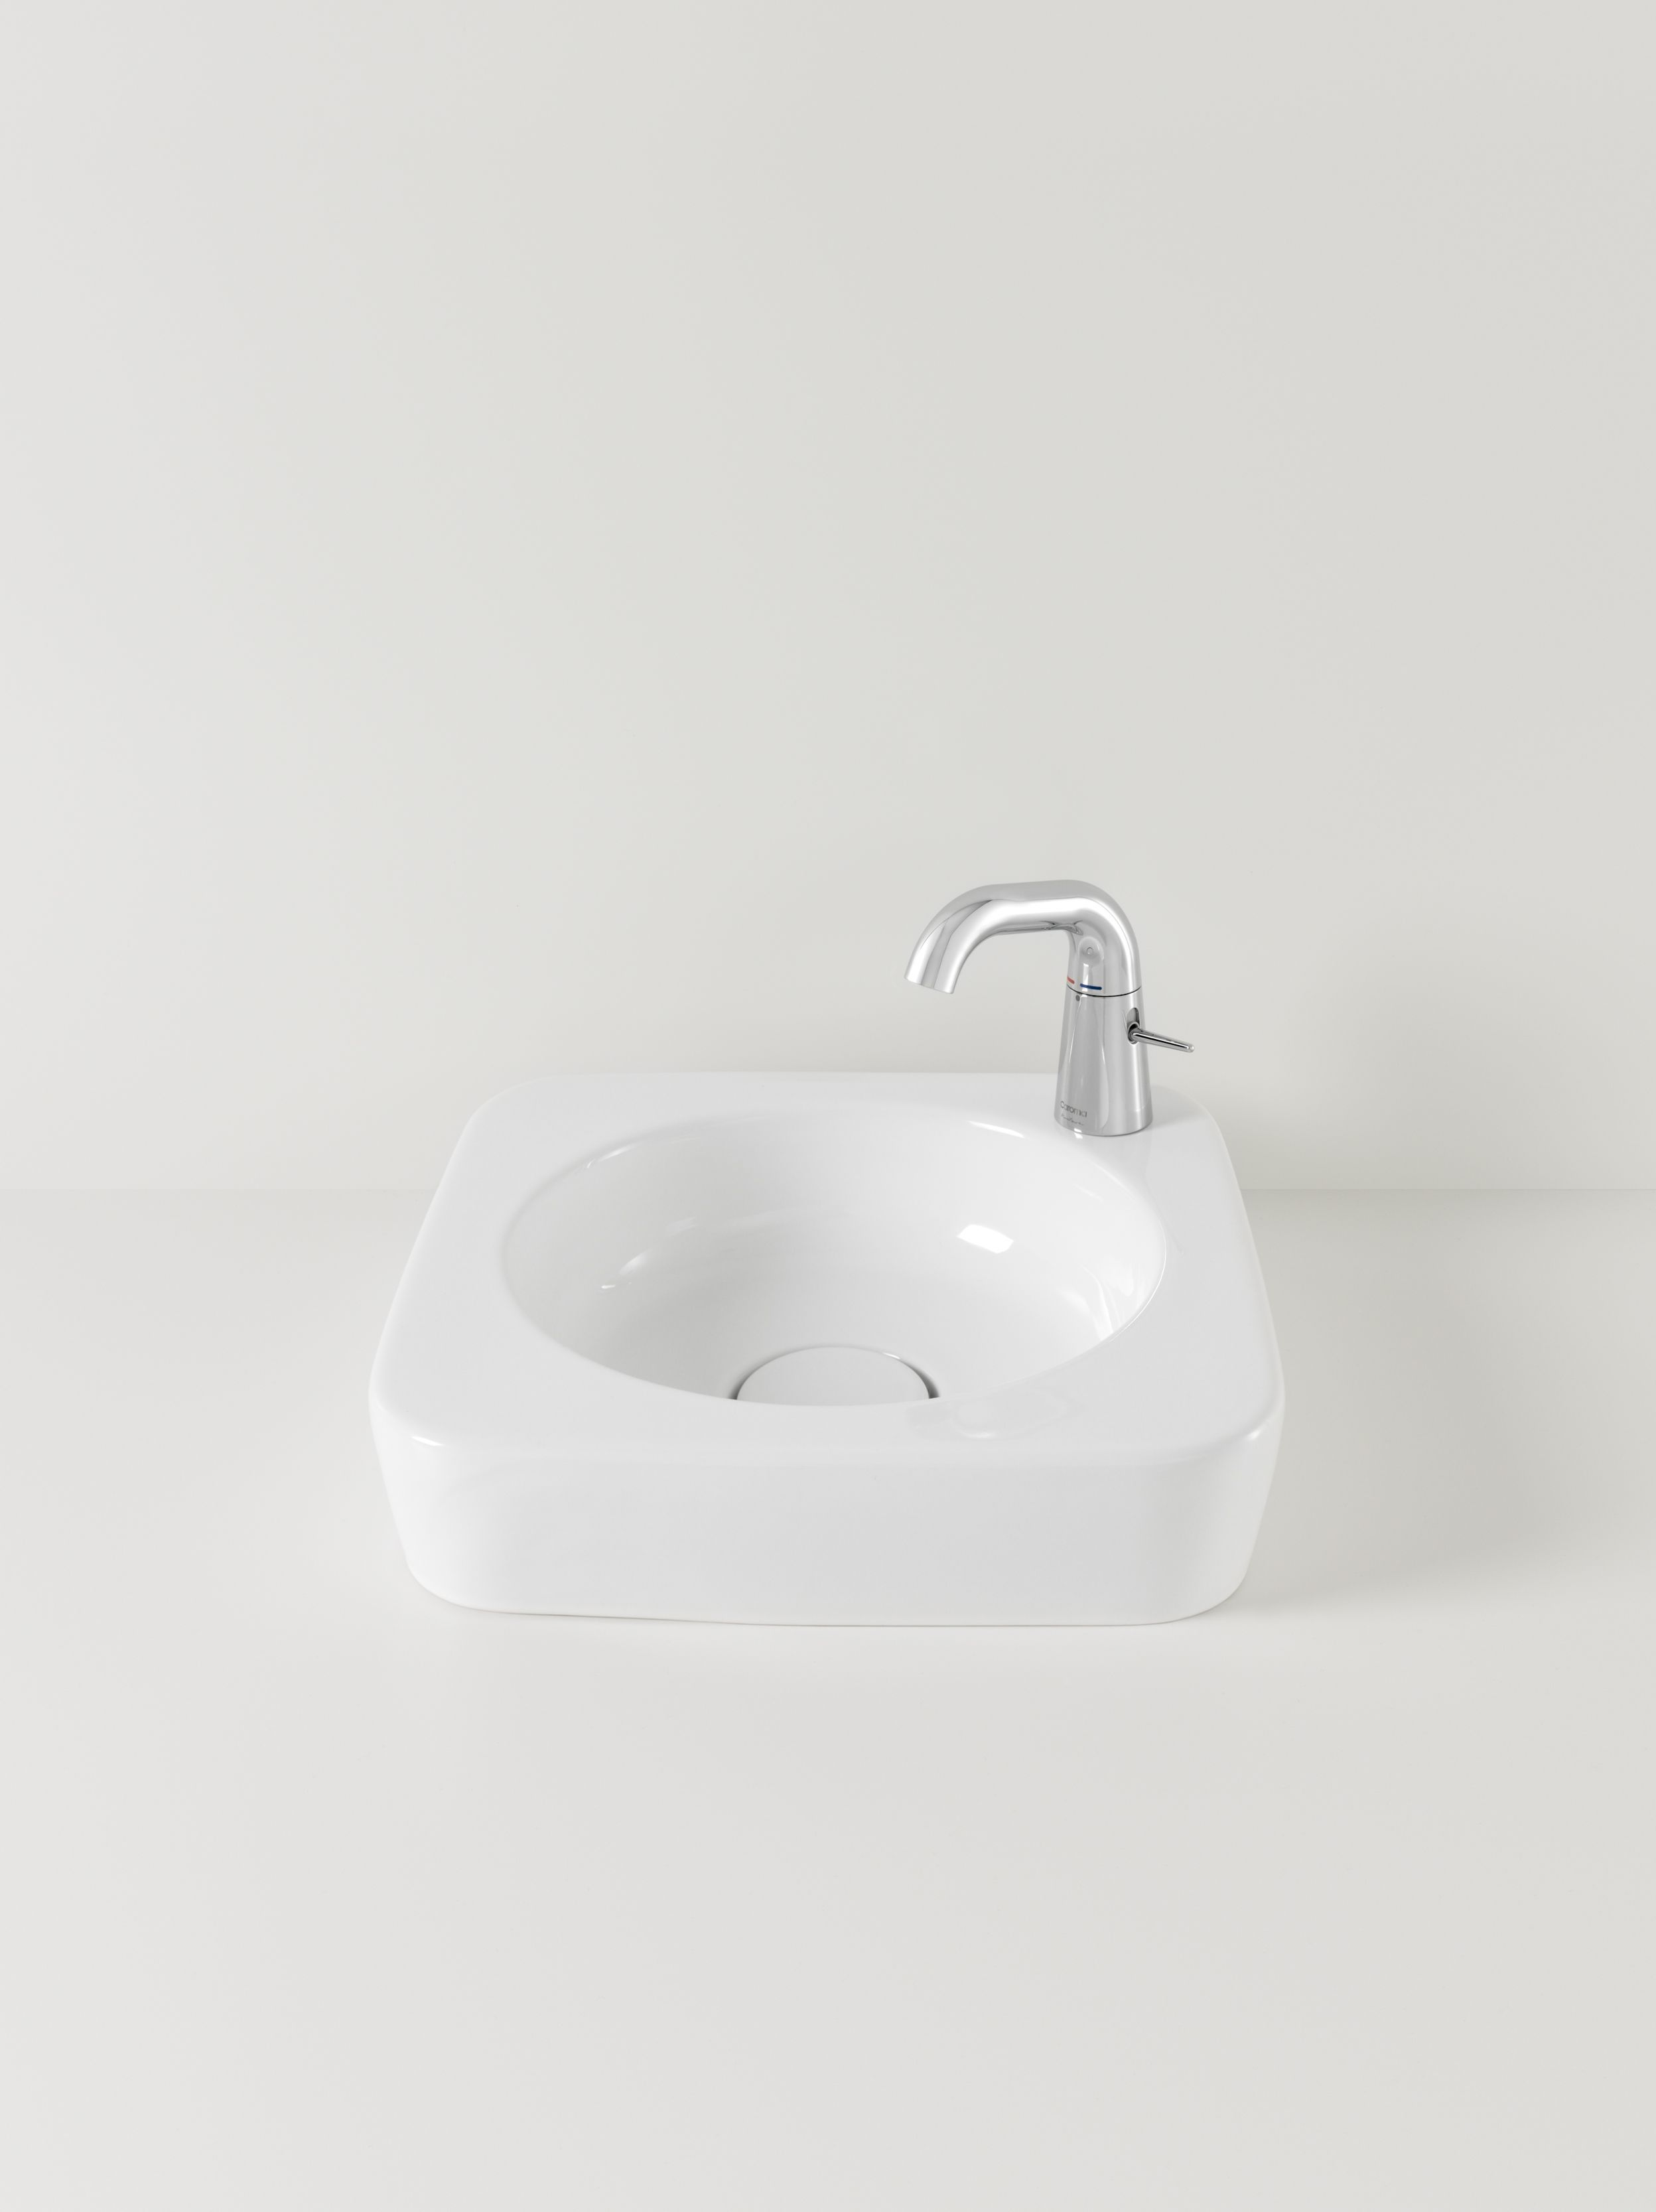 #Caroma #marc #newson #sink #bathroom Caroma U0026 Marc Newson Designer  Bathroom Range: Free Standing Basin And Tap